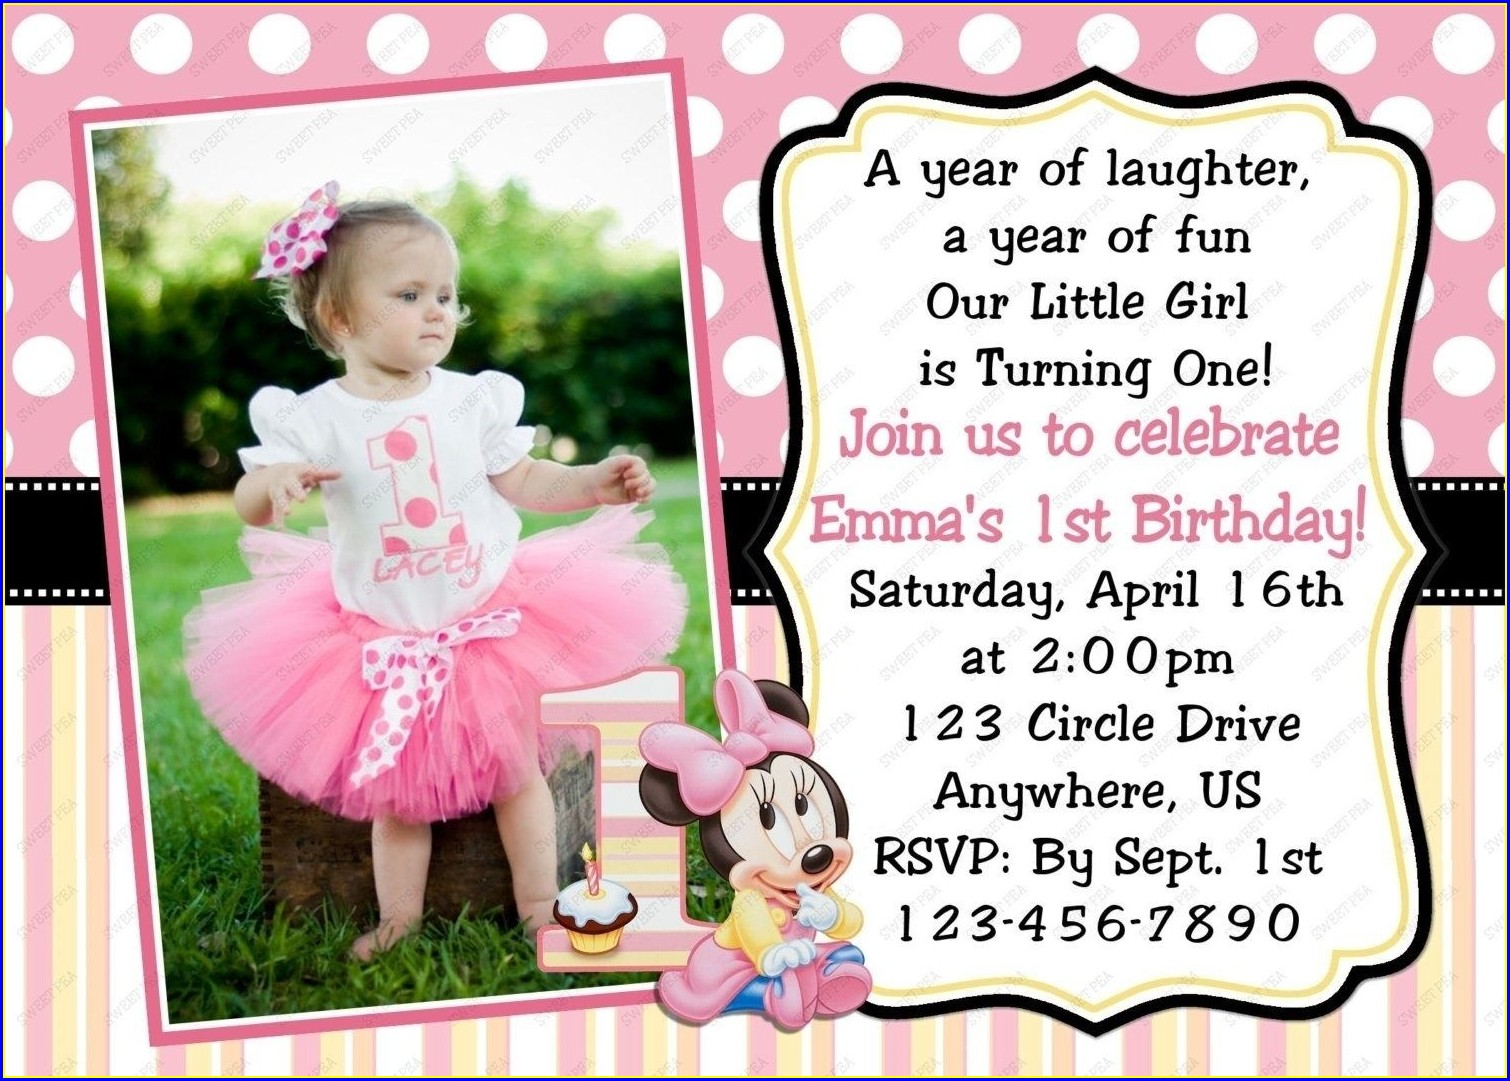 1st Birthday Invitation Card Design For Baby Girl